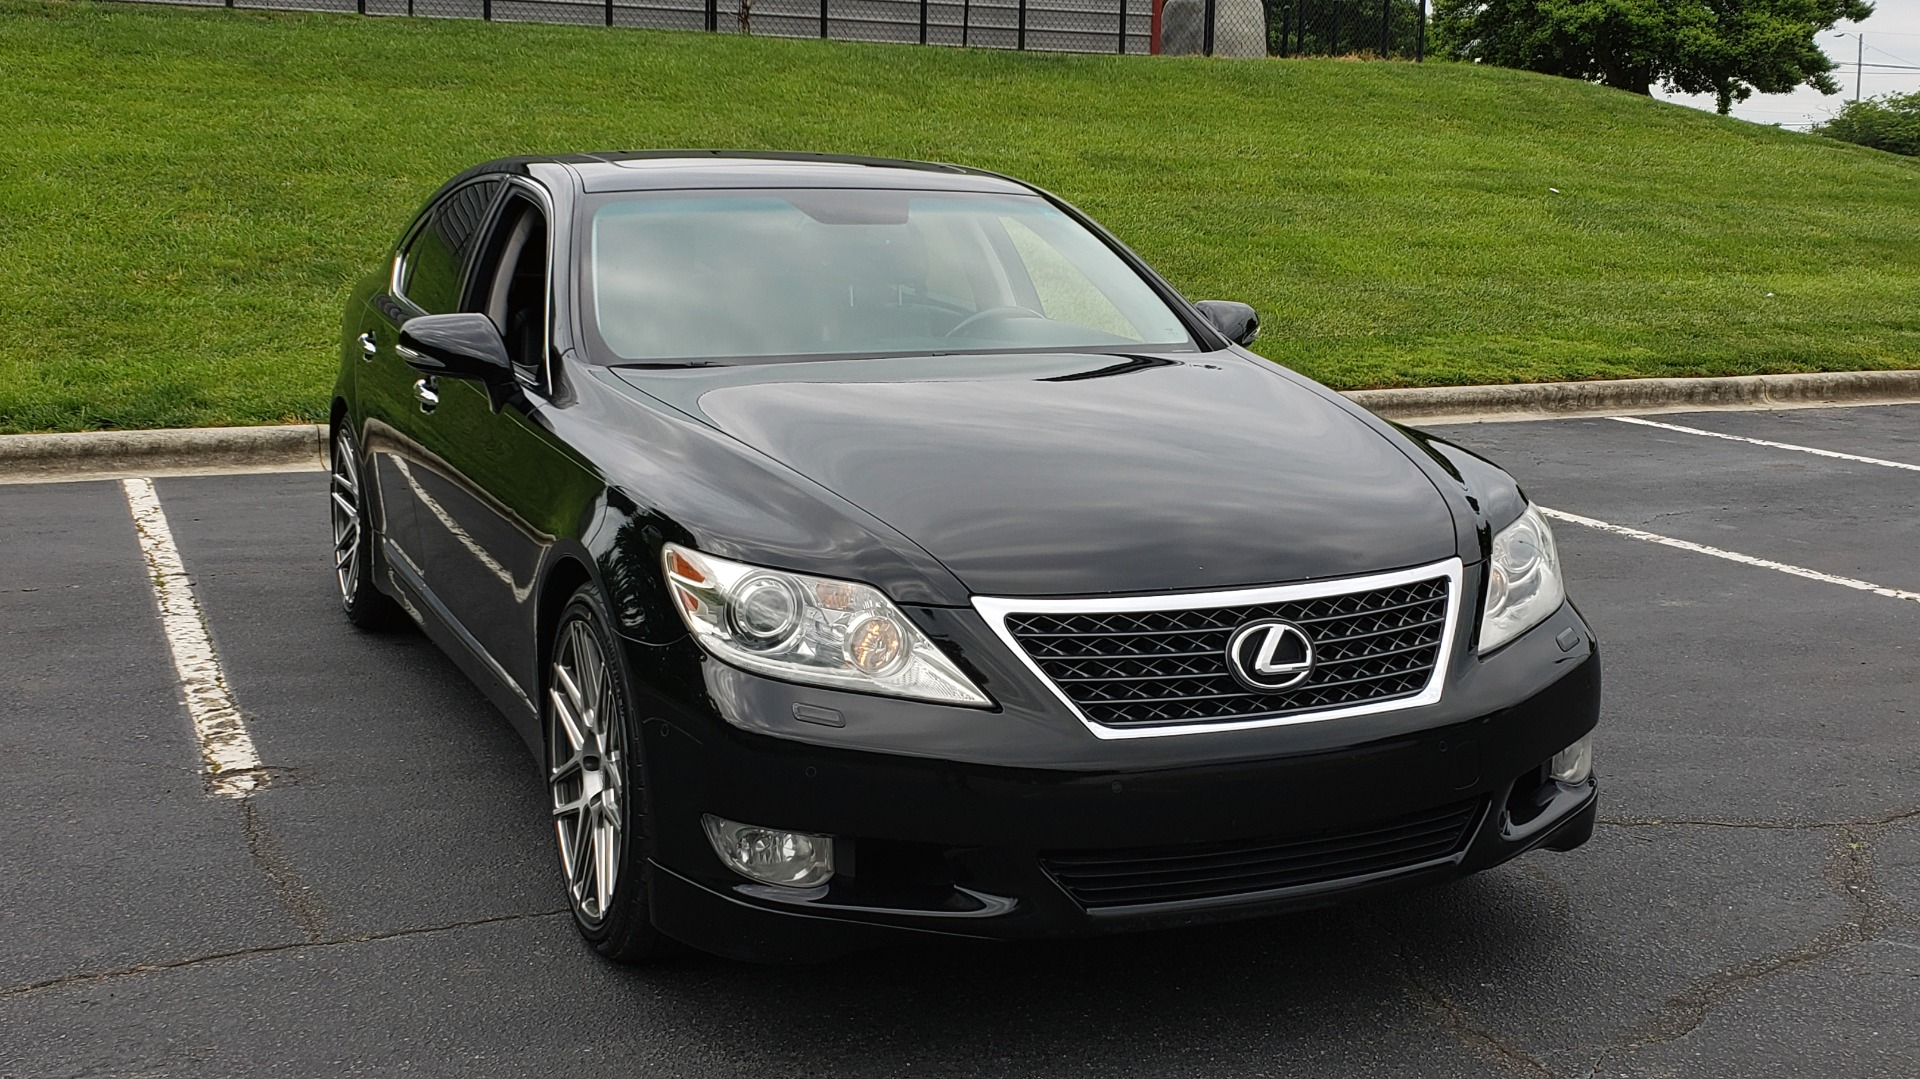 Used 2012 Lexus LS 460 COMFORT W/SPORT / VENT SEATS / NAV / MARK LEV SND / SUNROOF for sale Sold at Formula Imports in Charlotte NC 28227 25